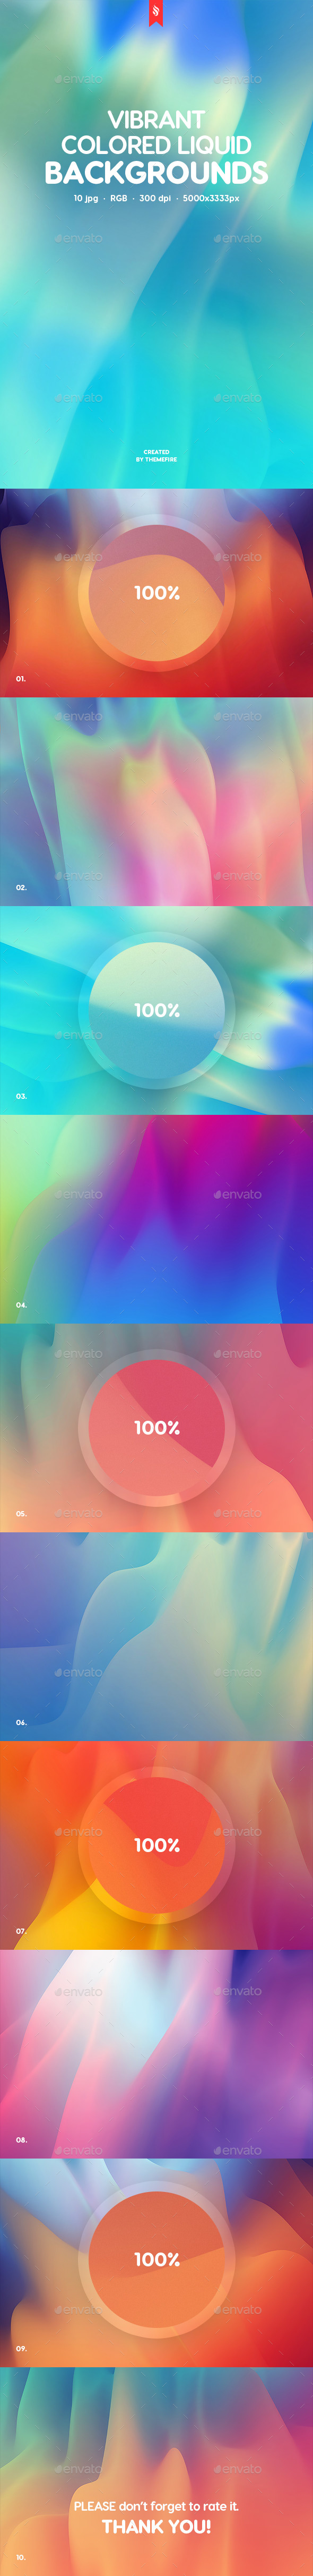 Vibrant Colored Liquid Backgrounds - Backgrounds Graphics